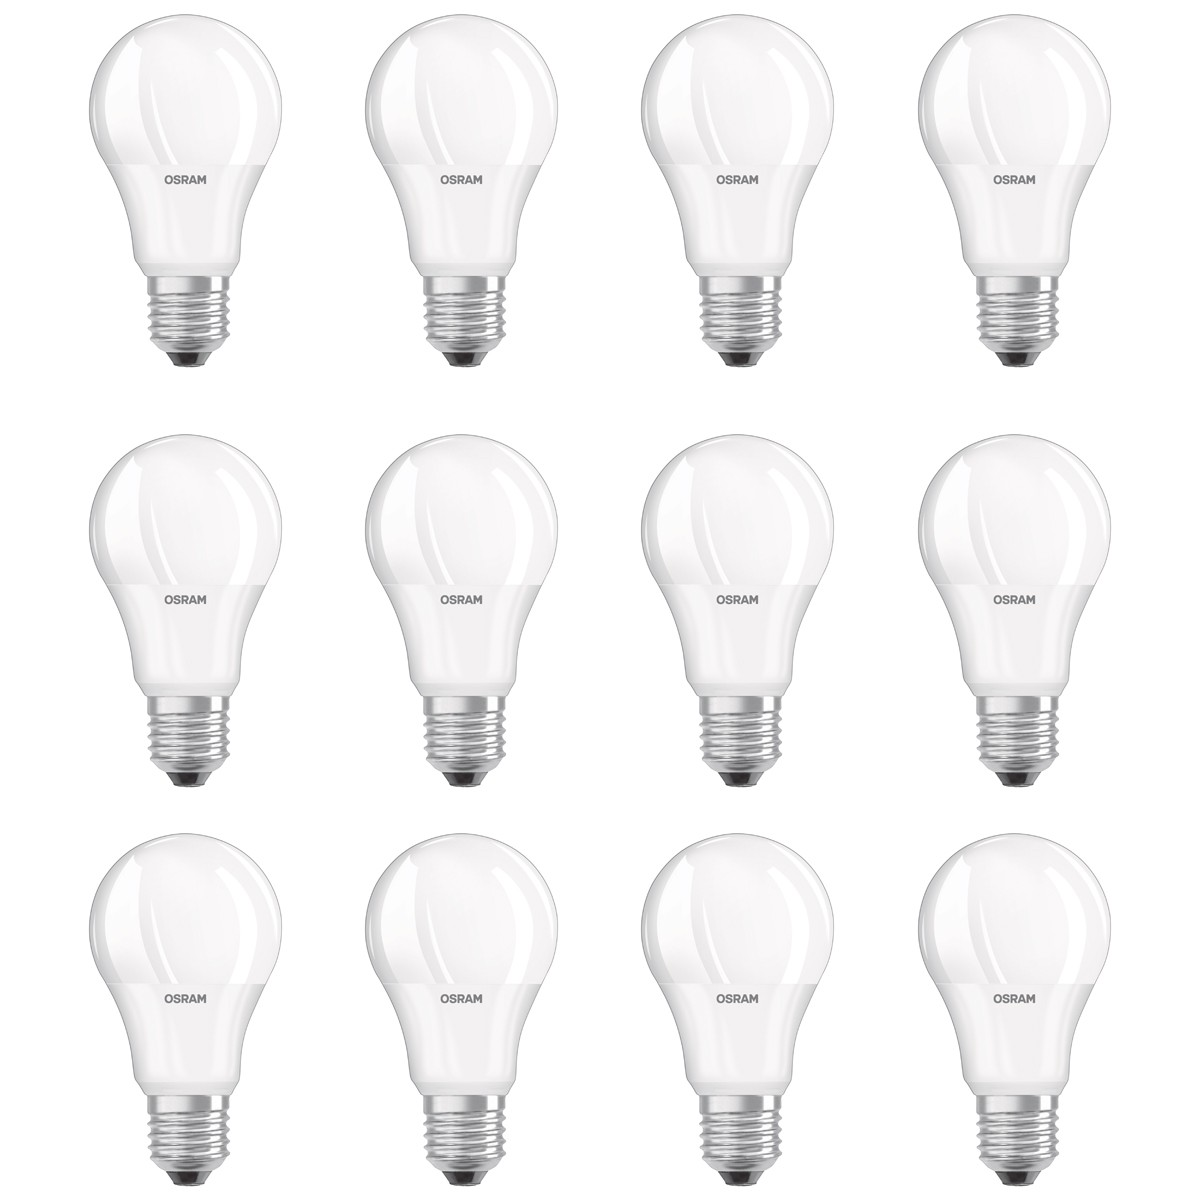 OSRAM LED BASE CLASSIC A 60 E27 MATT 8,5W=60W 806lm neutral weiß 4000K nondim 4e